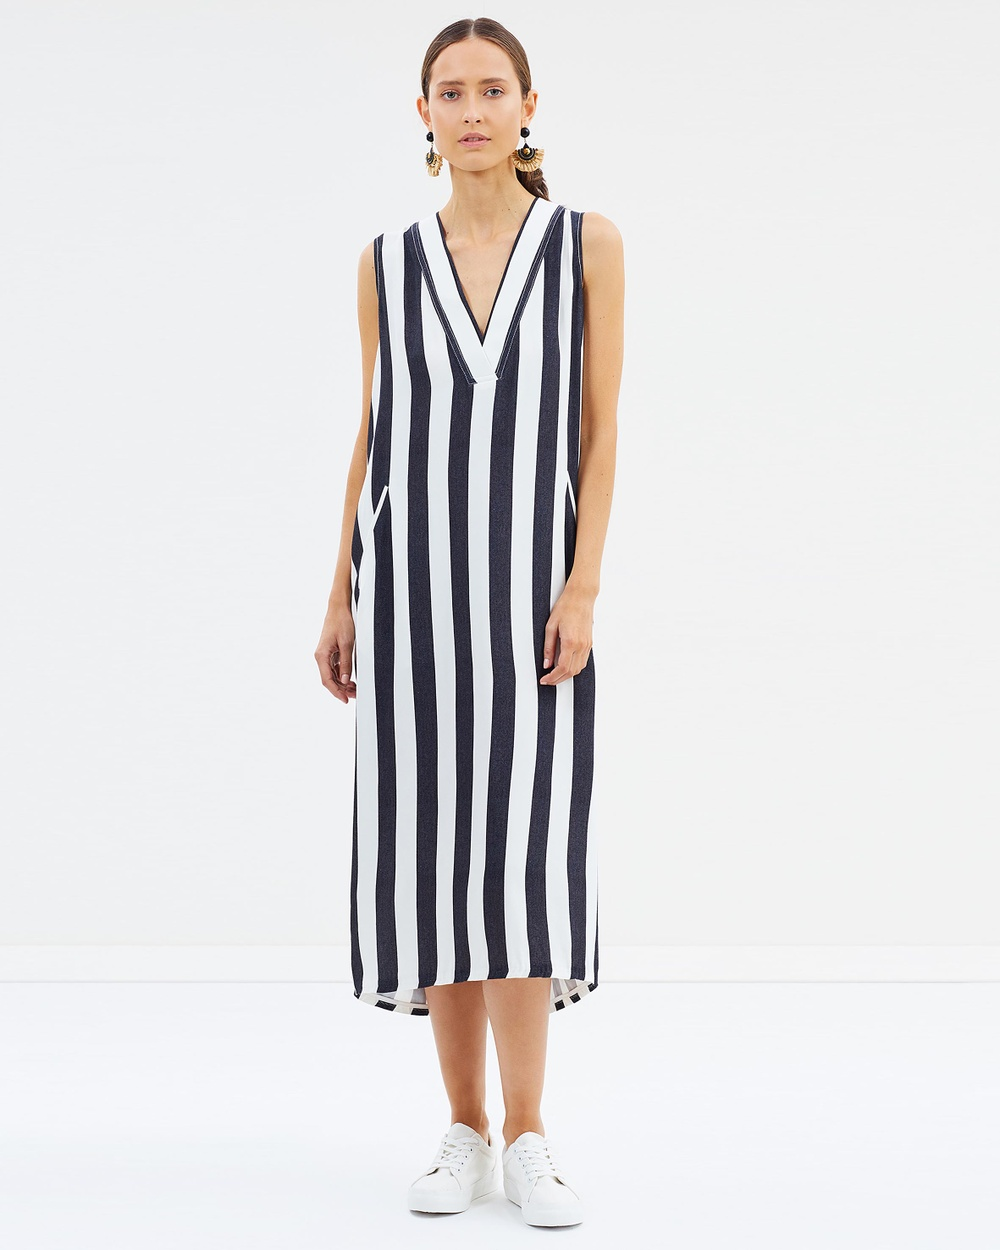 HOPE Core Dress Dresses Black Stripe Core Dress